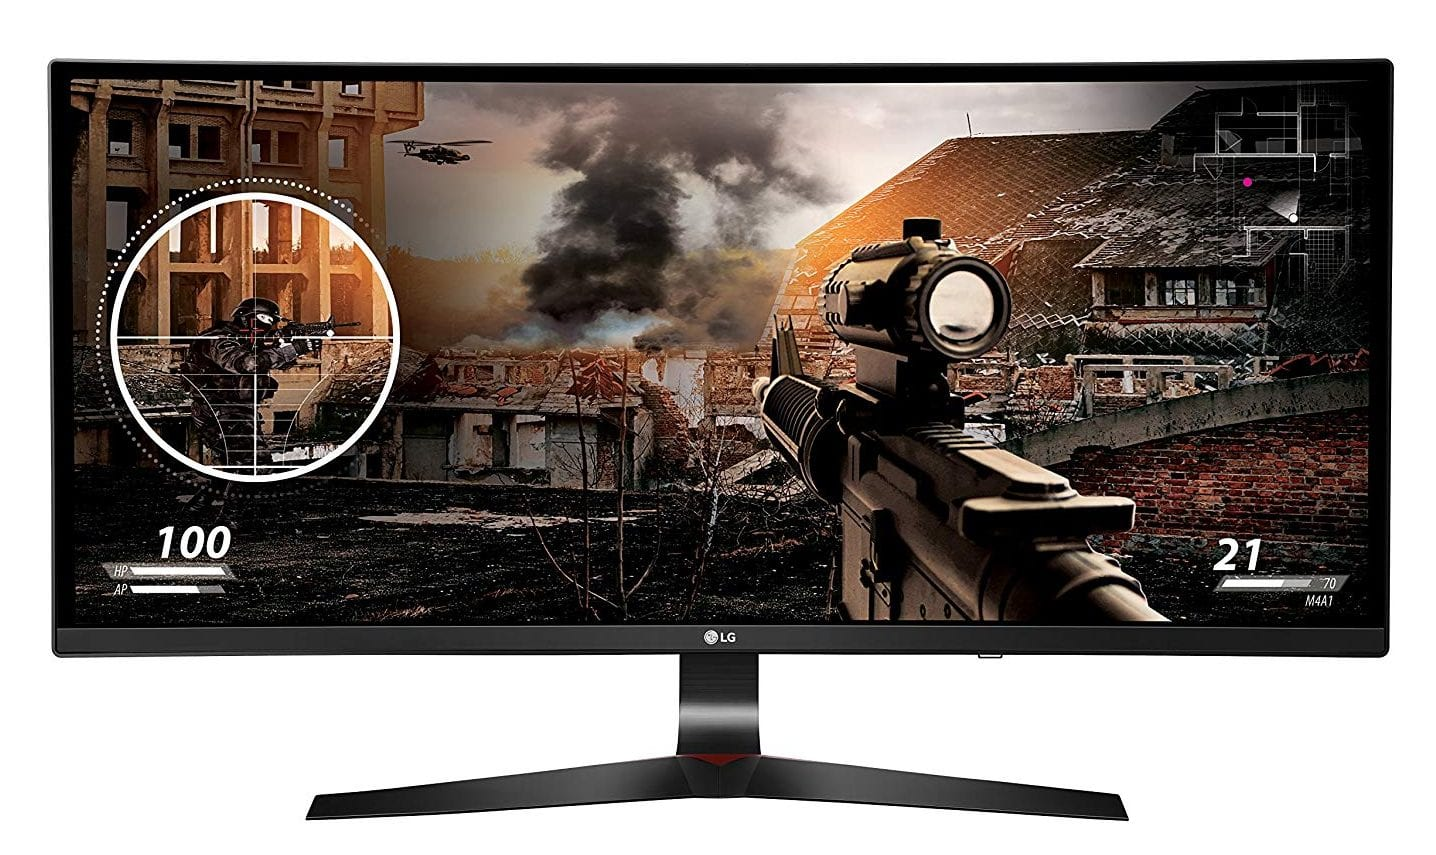 LG 34UC79G-B Curved Ultra-Wide Gaming Monitor